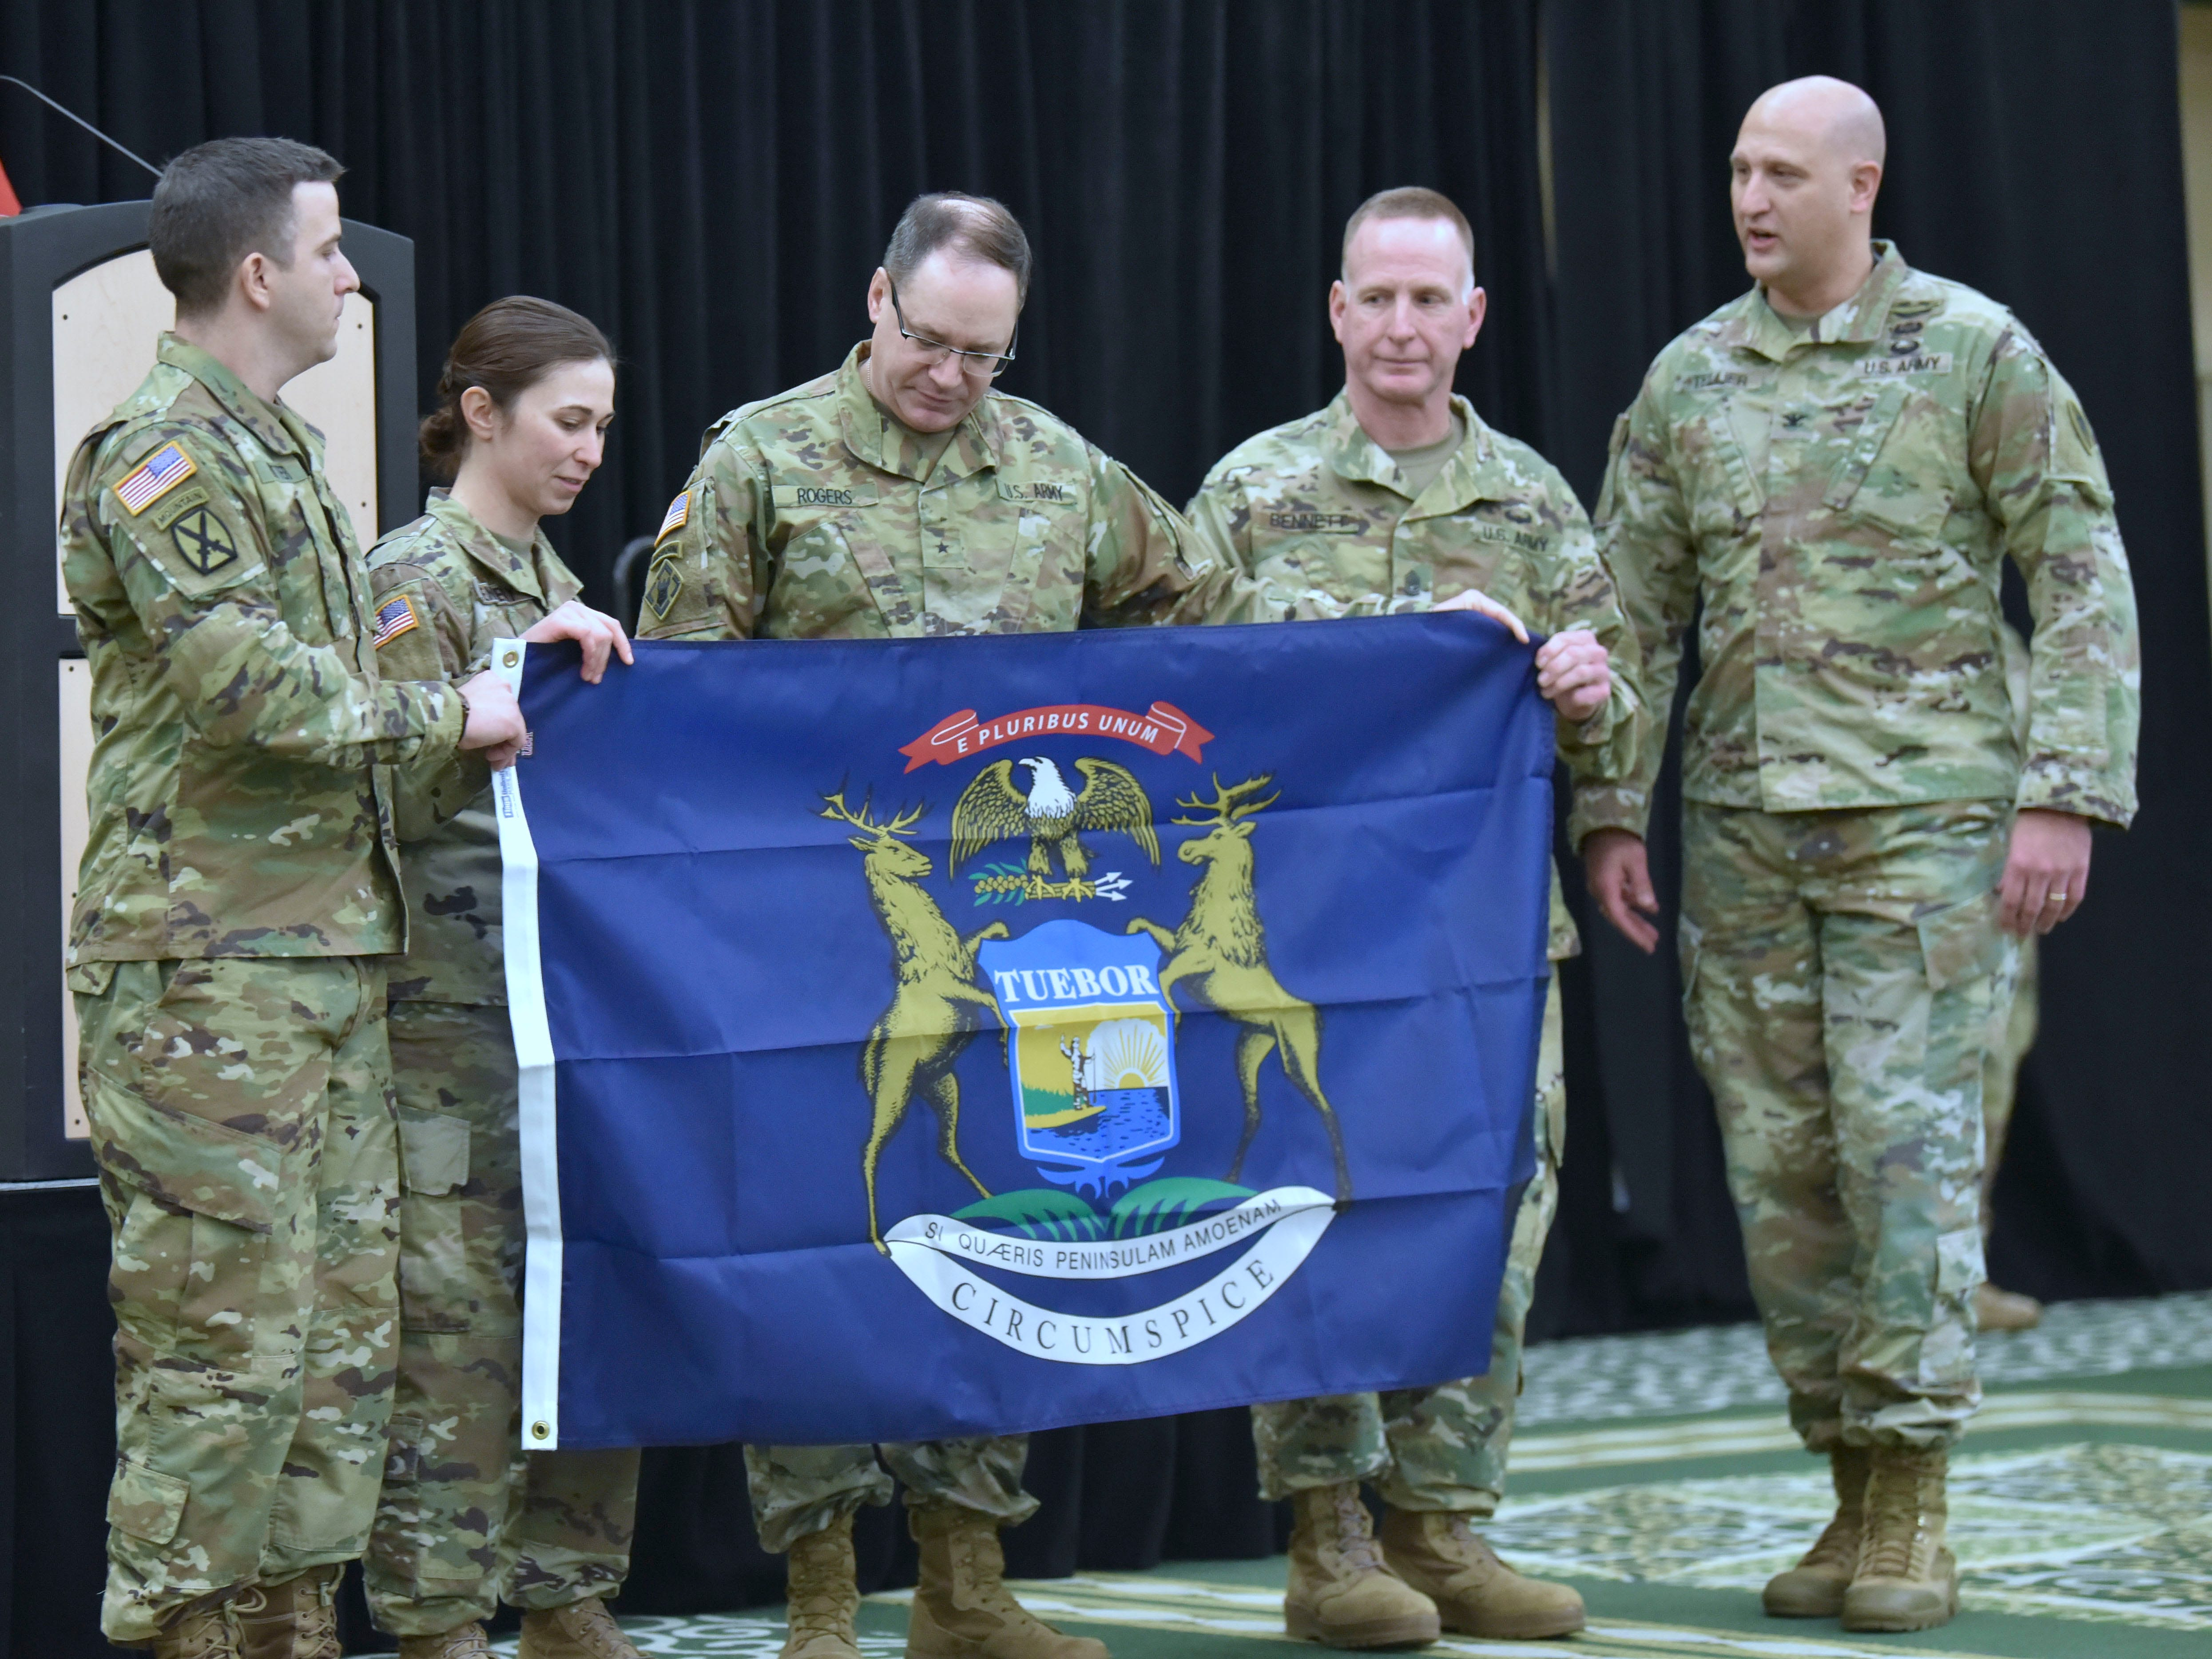 (L-R): 1st Sgt. Jason Ritter, Captain Andrea Kennedy, Brigadier General Paul Rogers, Command Sgt. Major Jay Bennett and Colonel Mark Tellier pose with the Michigan flag that was presented to the 1171st Medical Company, Area Support (MCAS) unit for them fly during their oversees deployment at a ceremony at EMU, Saturday morning, January 5, 2019.